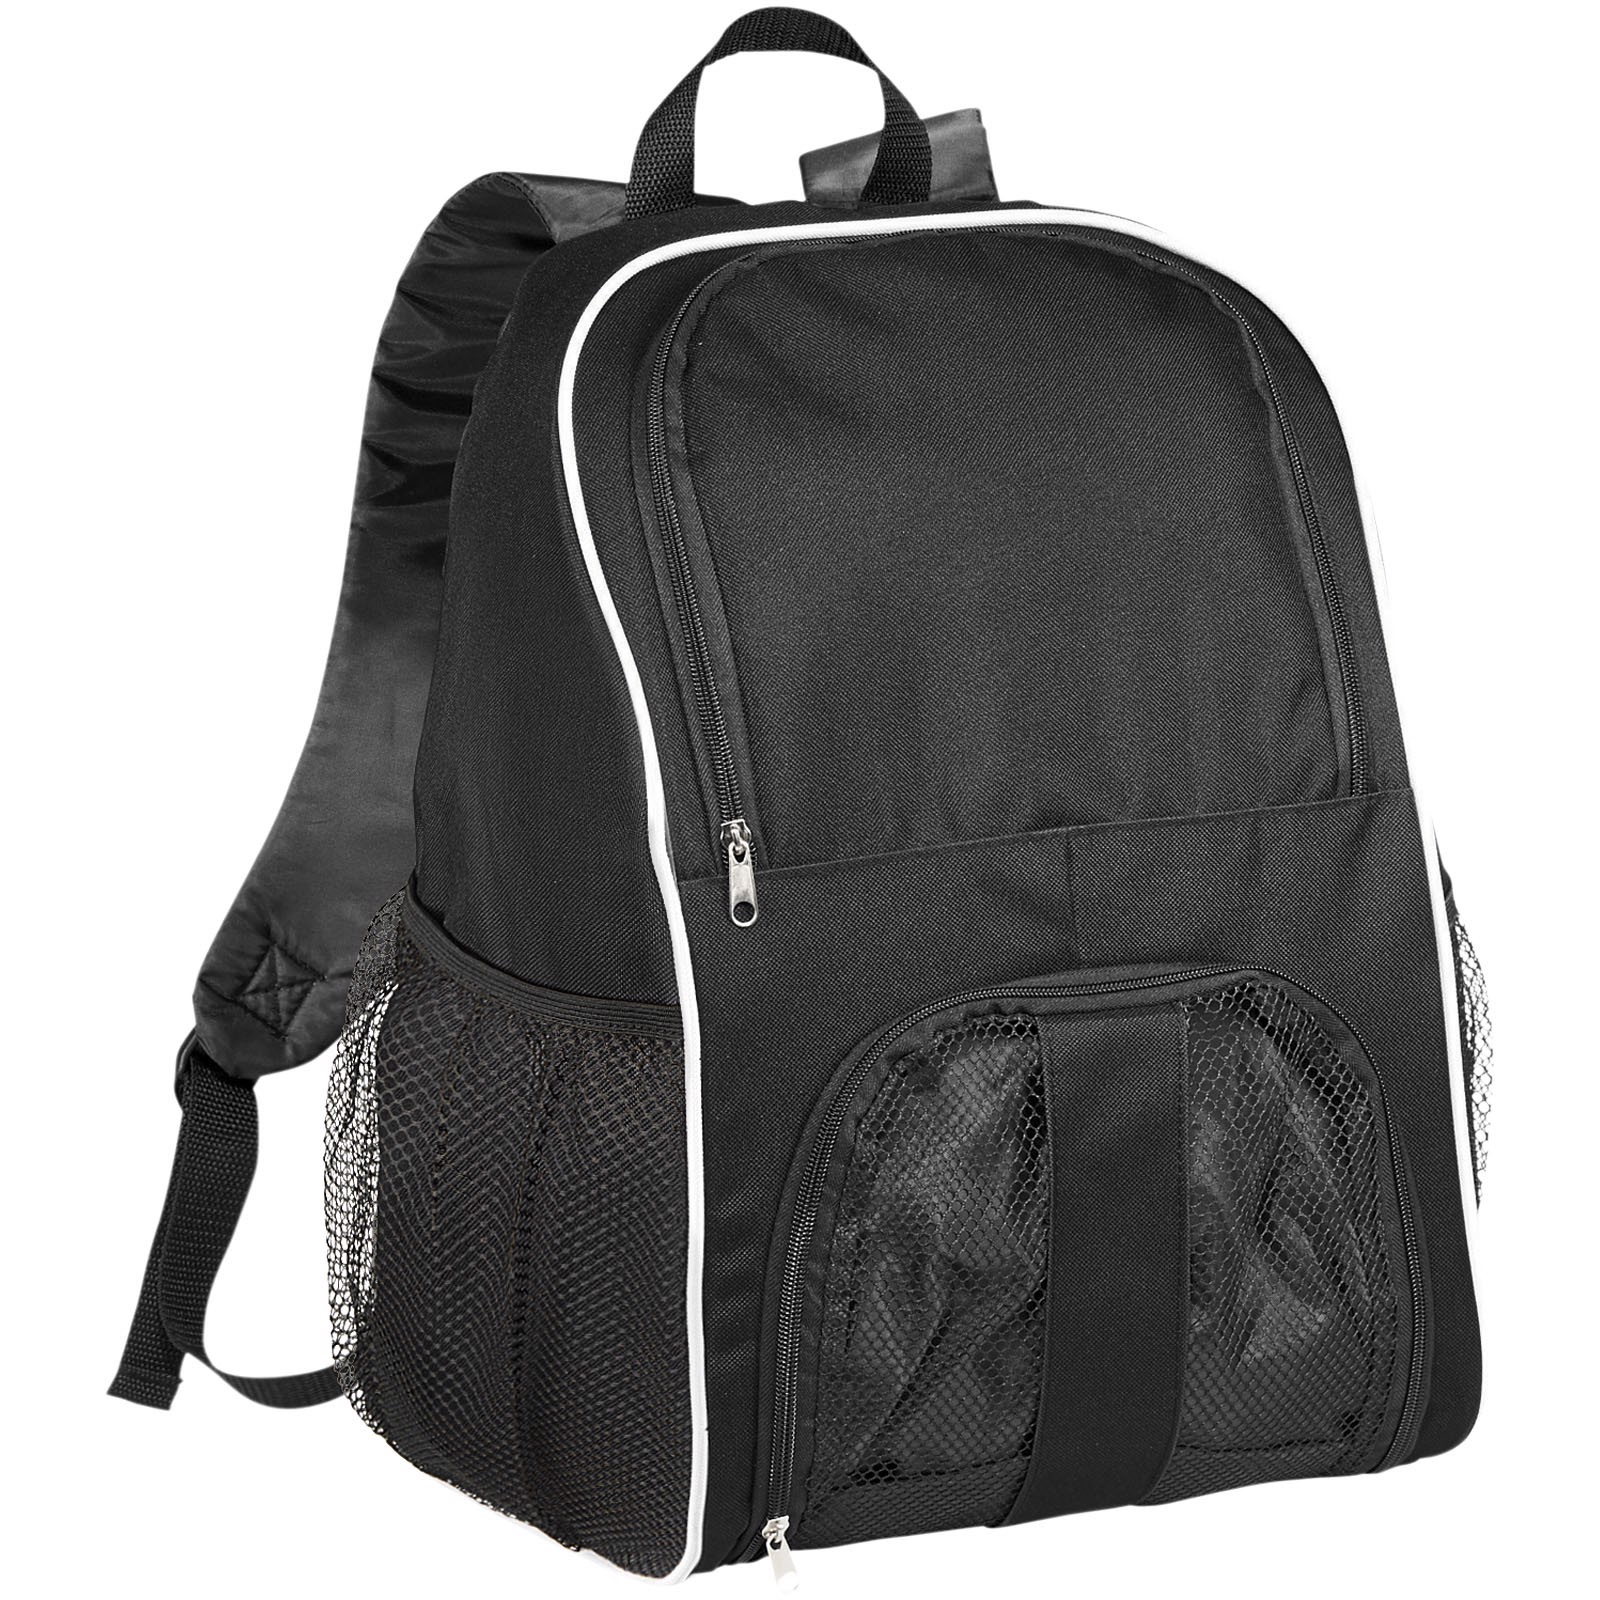 Goal backpack with mesh footbal compartment - Solid black